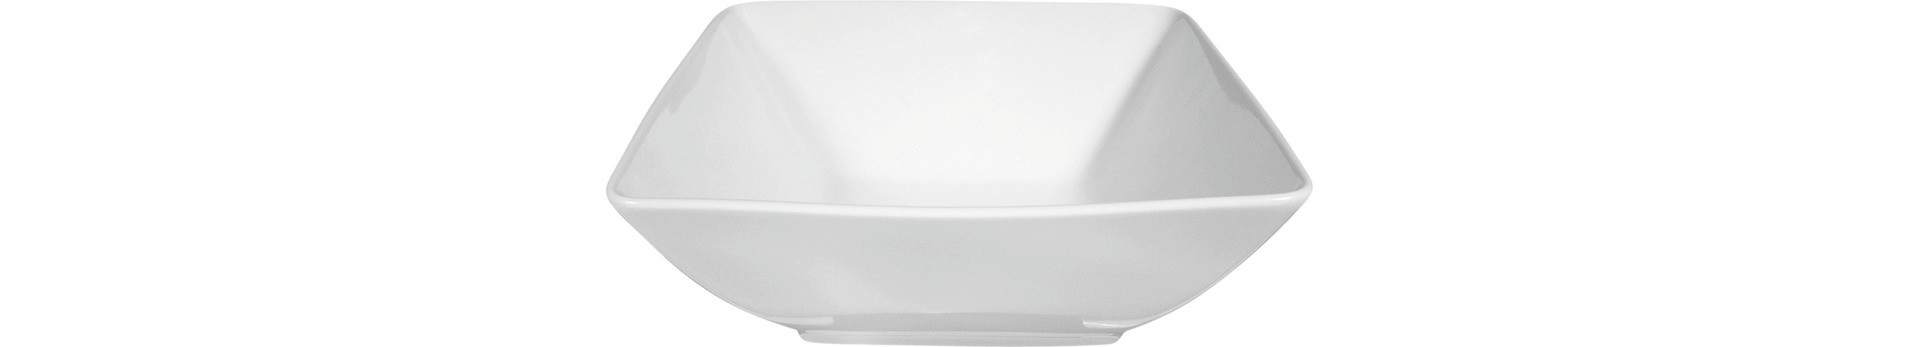 Buffet Gourmet, Bowl 230 x 230 mm / 2,20 l